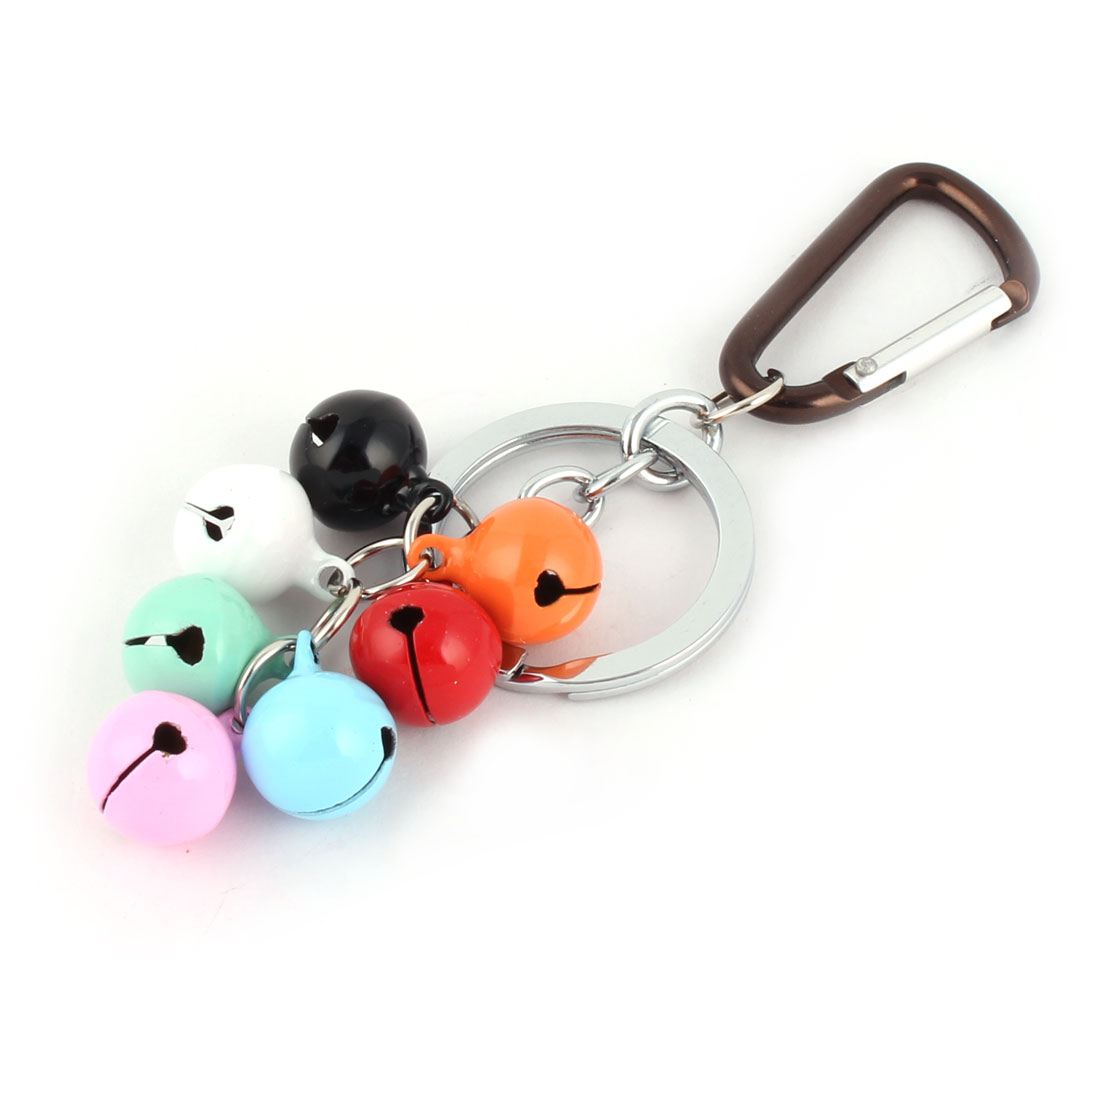 Spring Loaded Gate Carabiner 7 Bell Pendant Key Ring Chain Holder Decoration Colorful